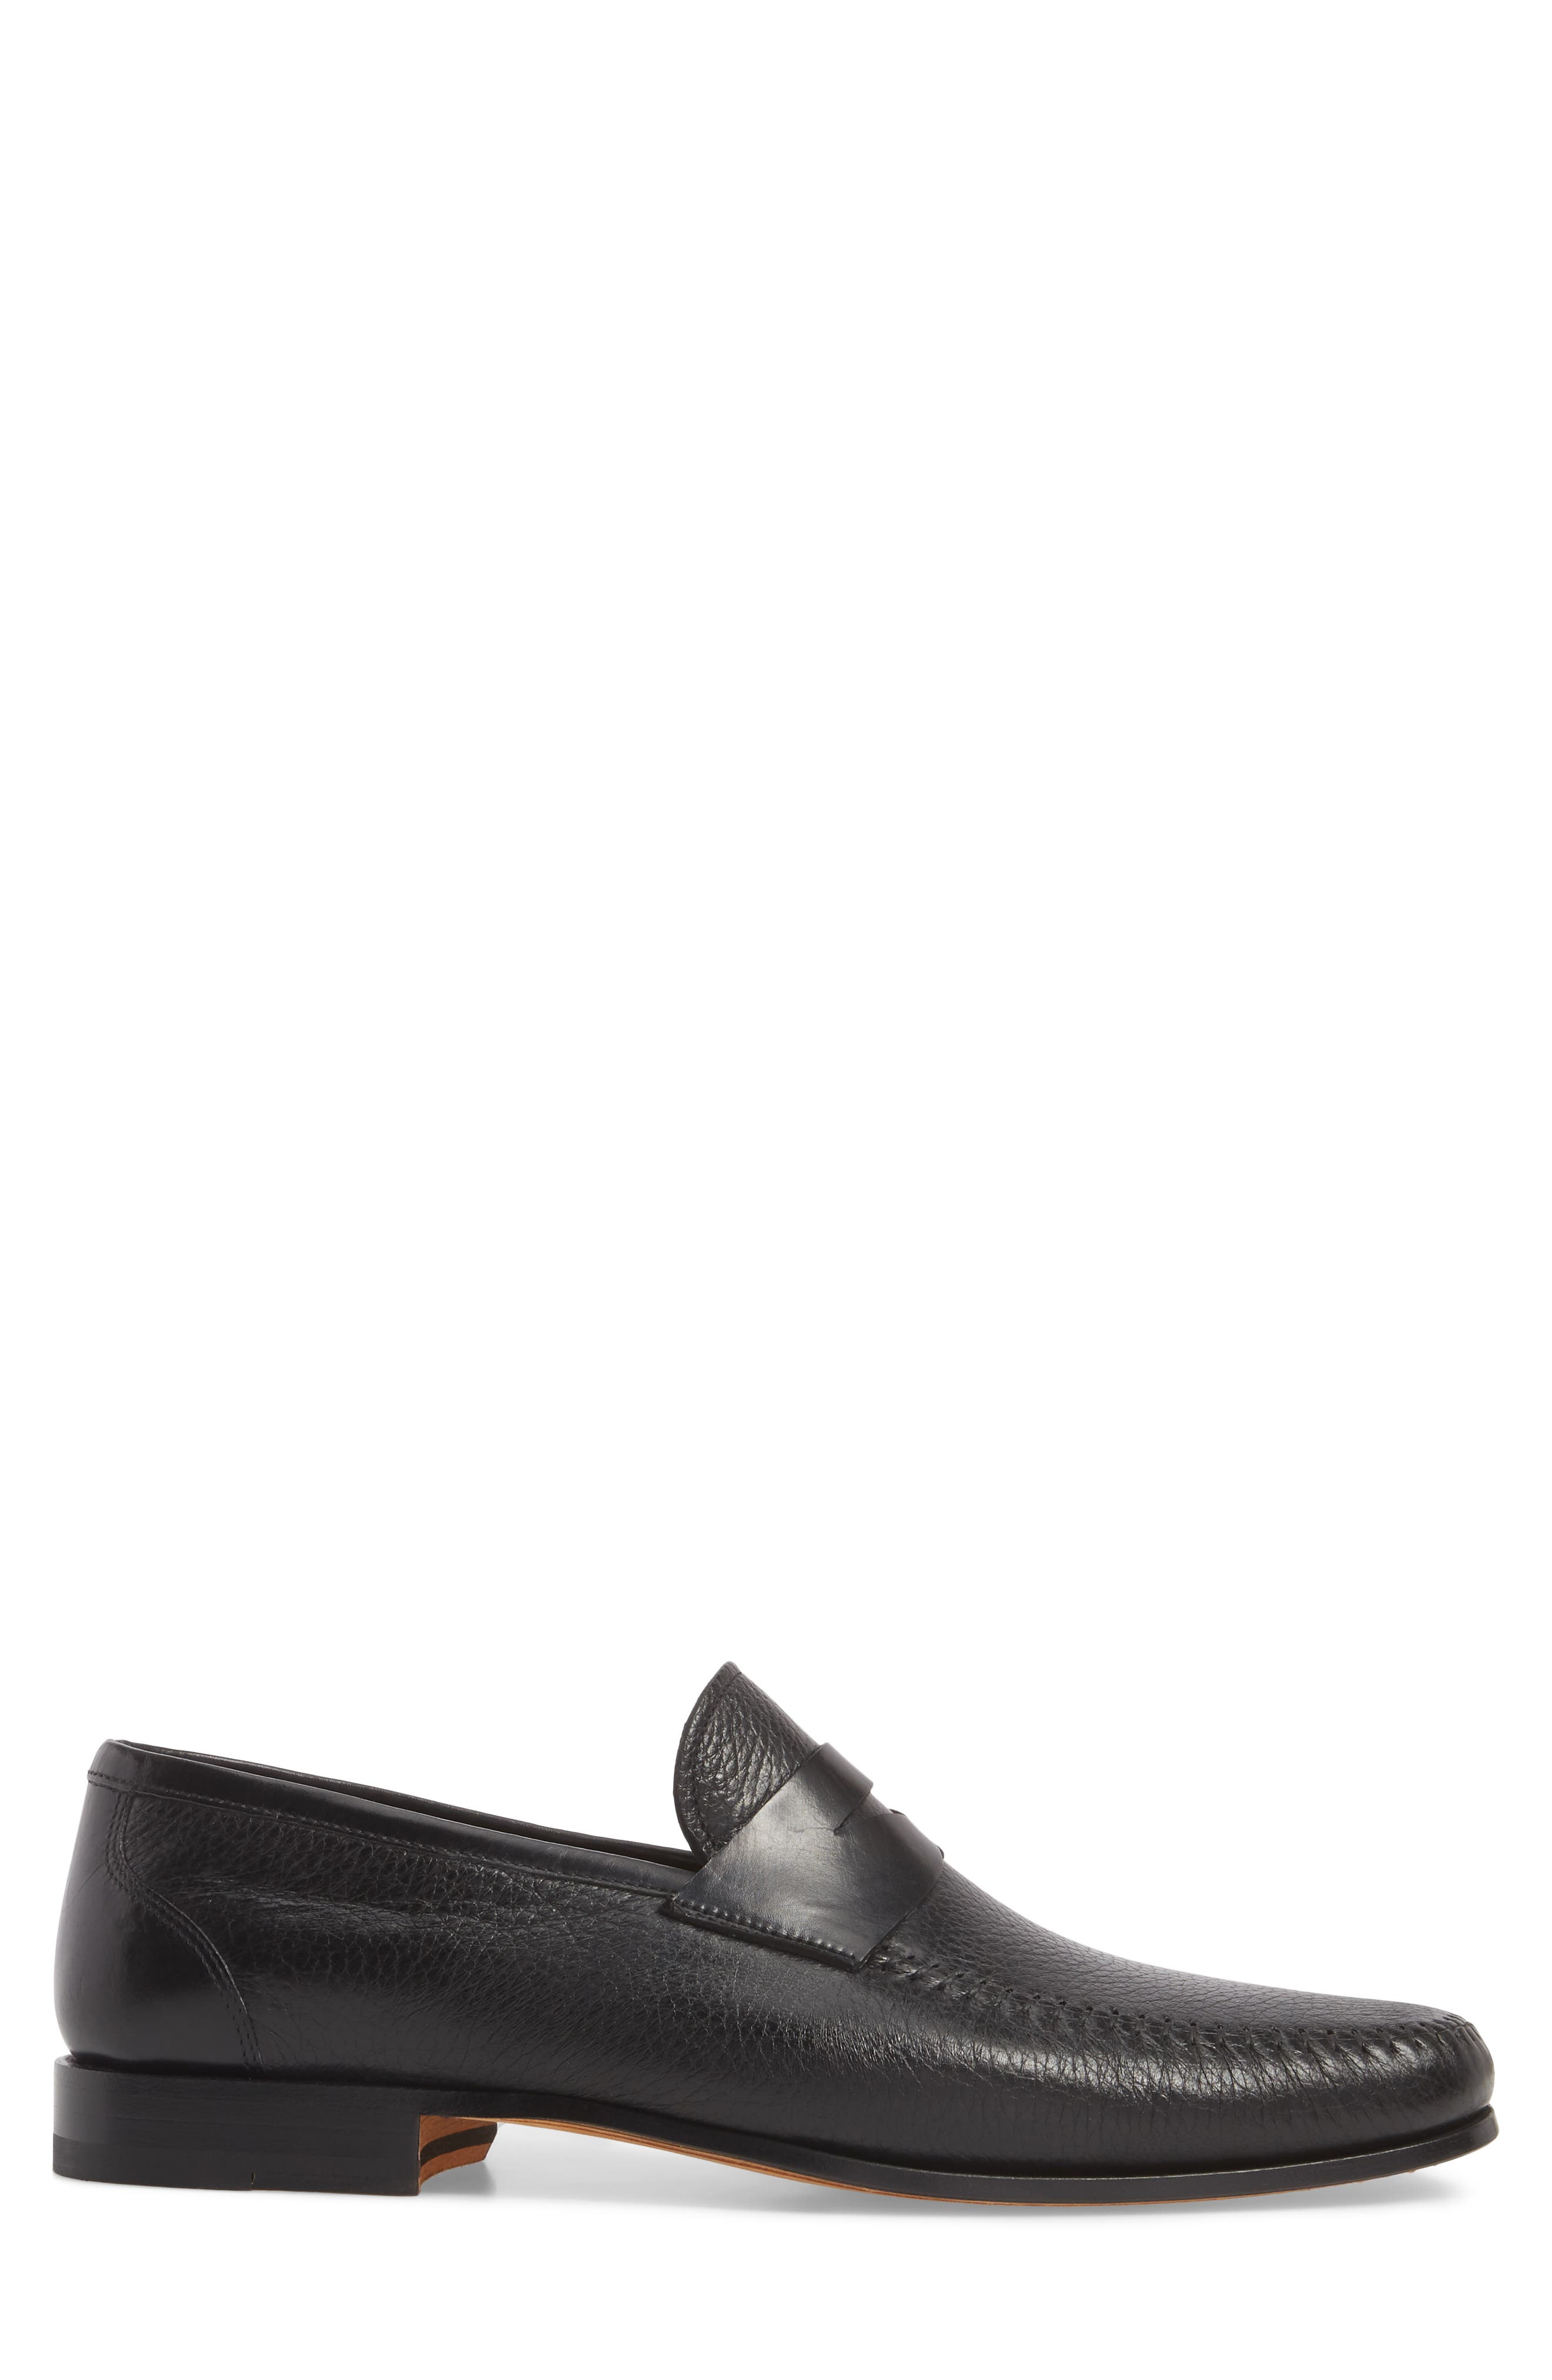 MAGNANNI,                             Ramos Moc Toe Penny Loafer,                             Alternate thumbnail 3, color,                             BLACK/BLACK LEATHER